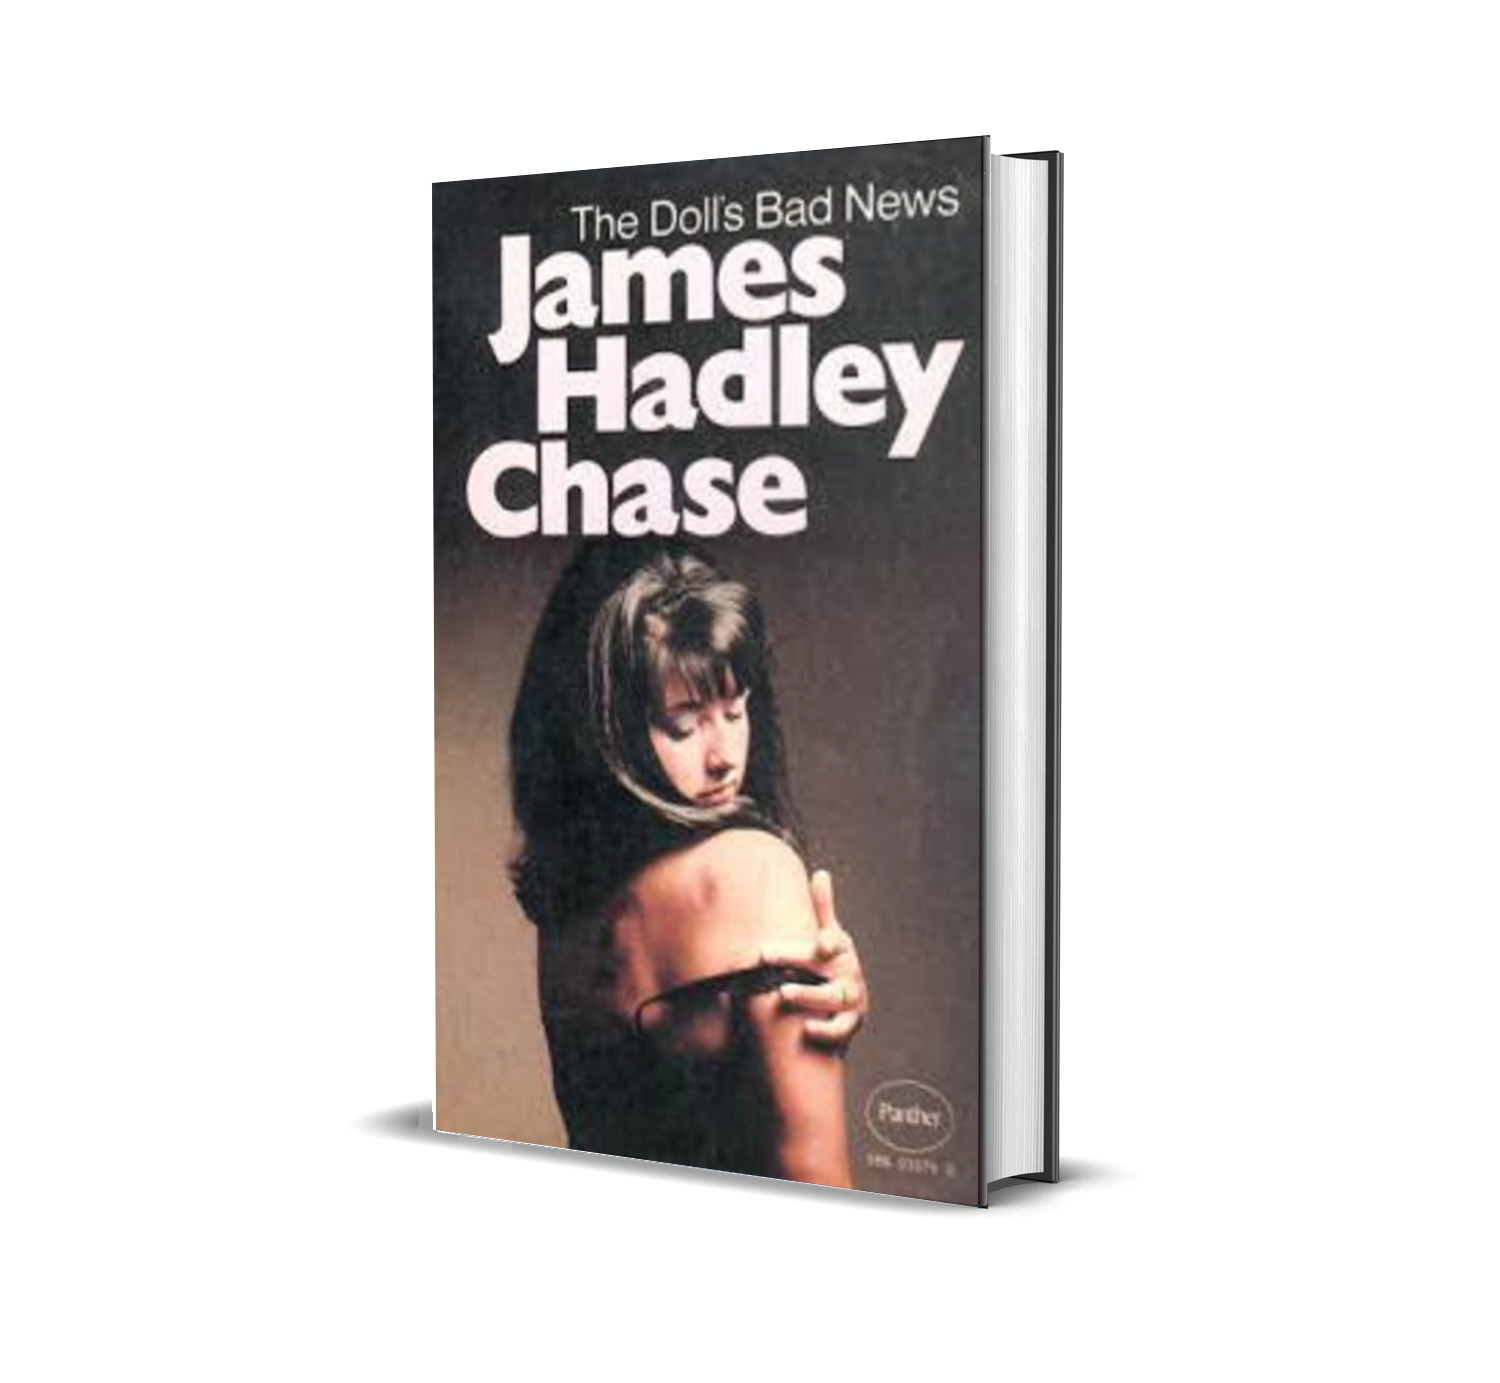 THE DOLL'S BAD NEWS JAMES HADLEY CHASE